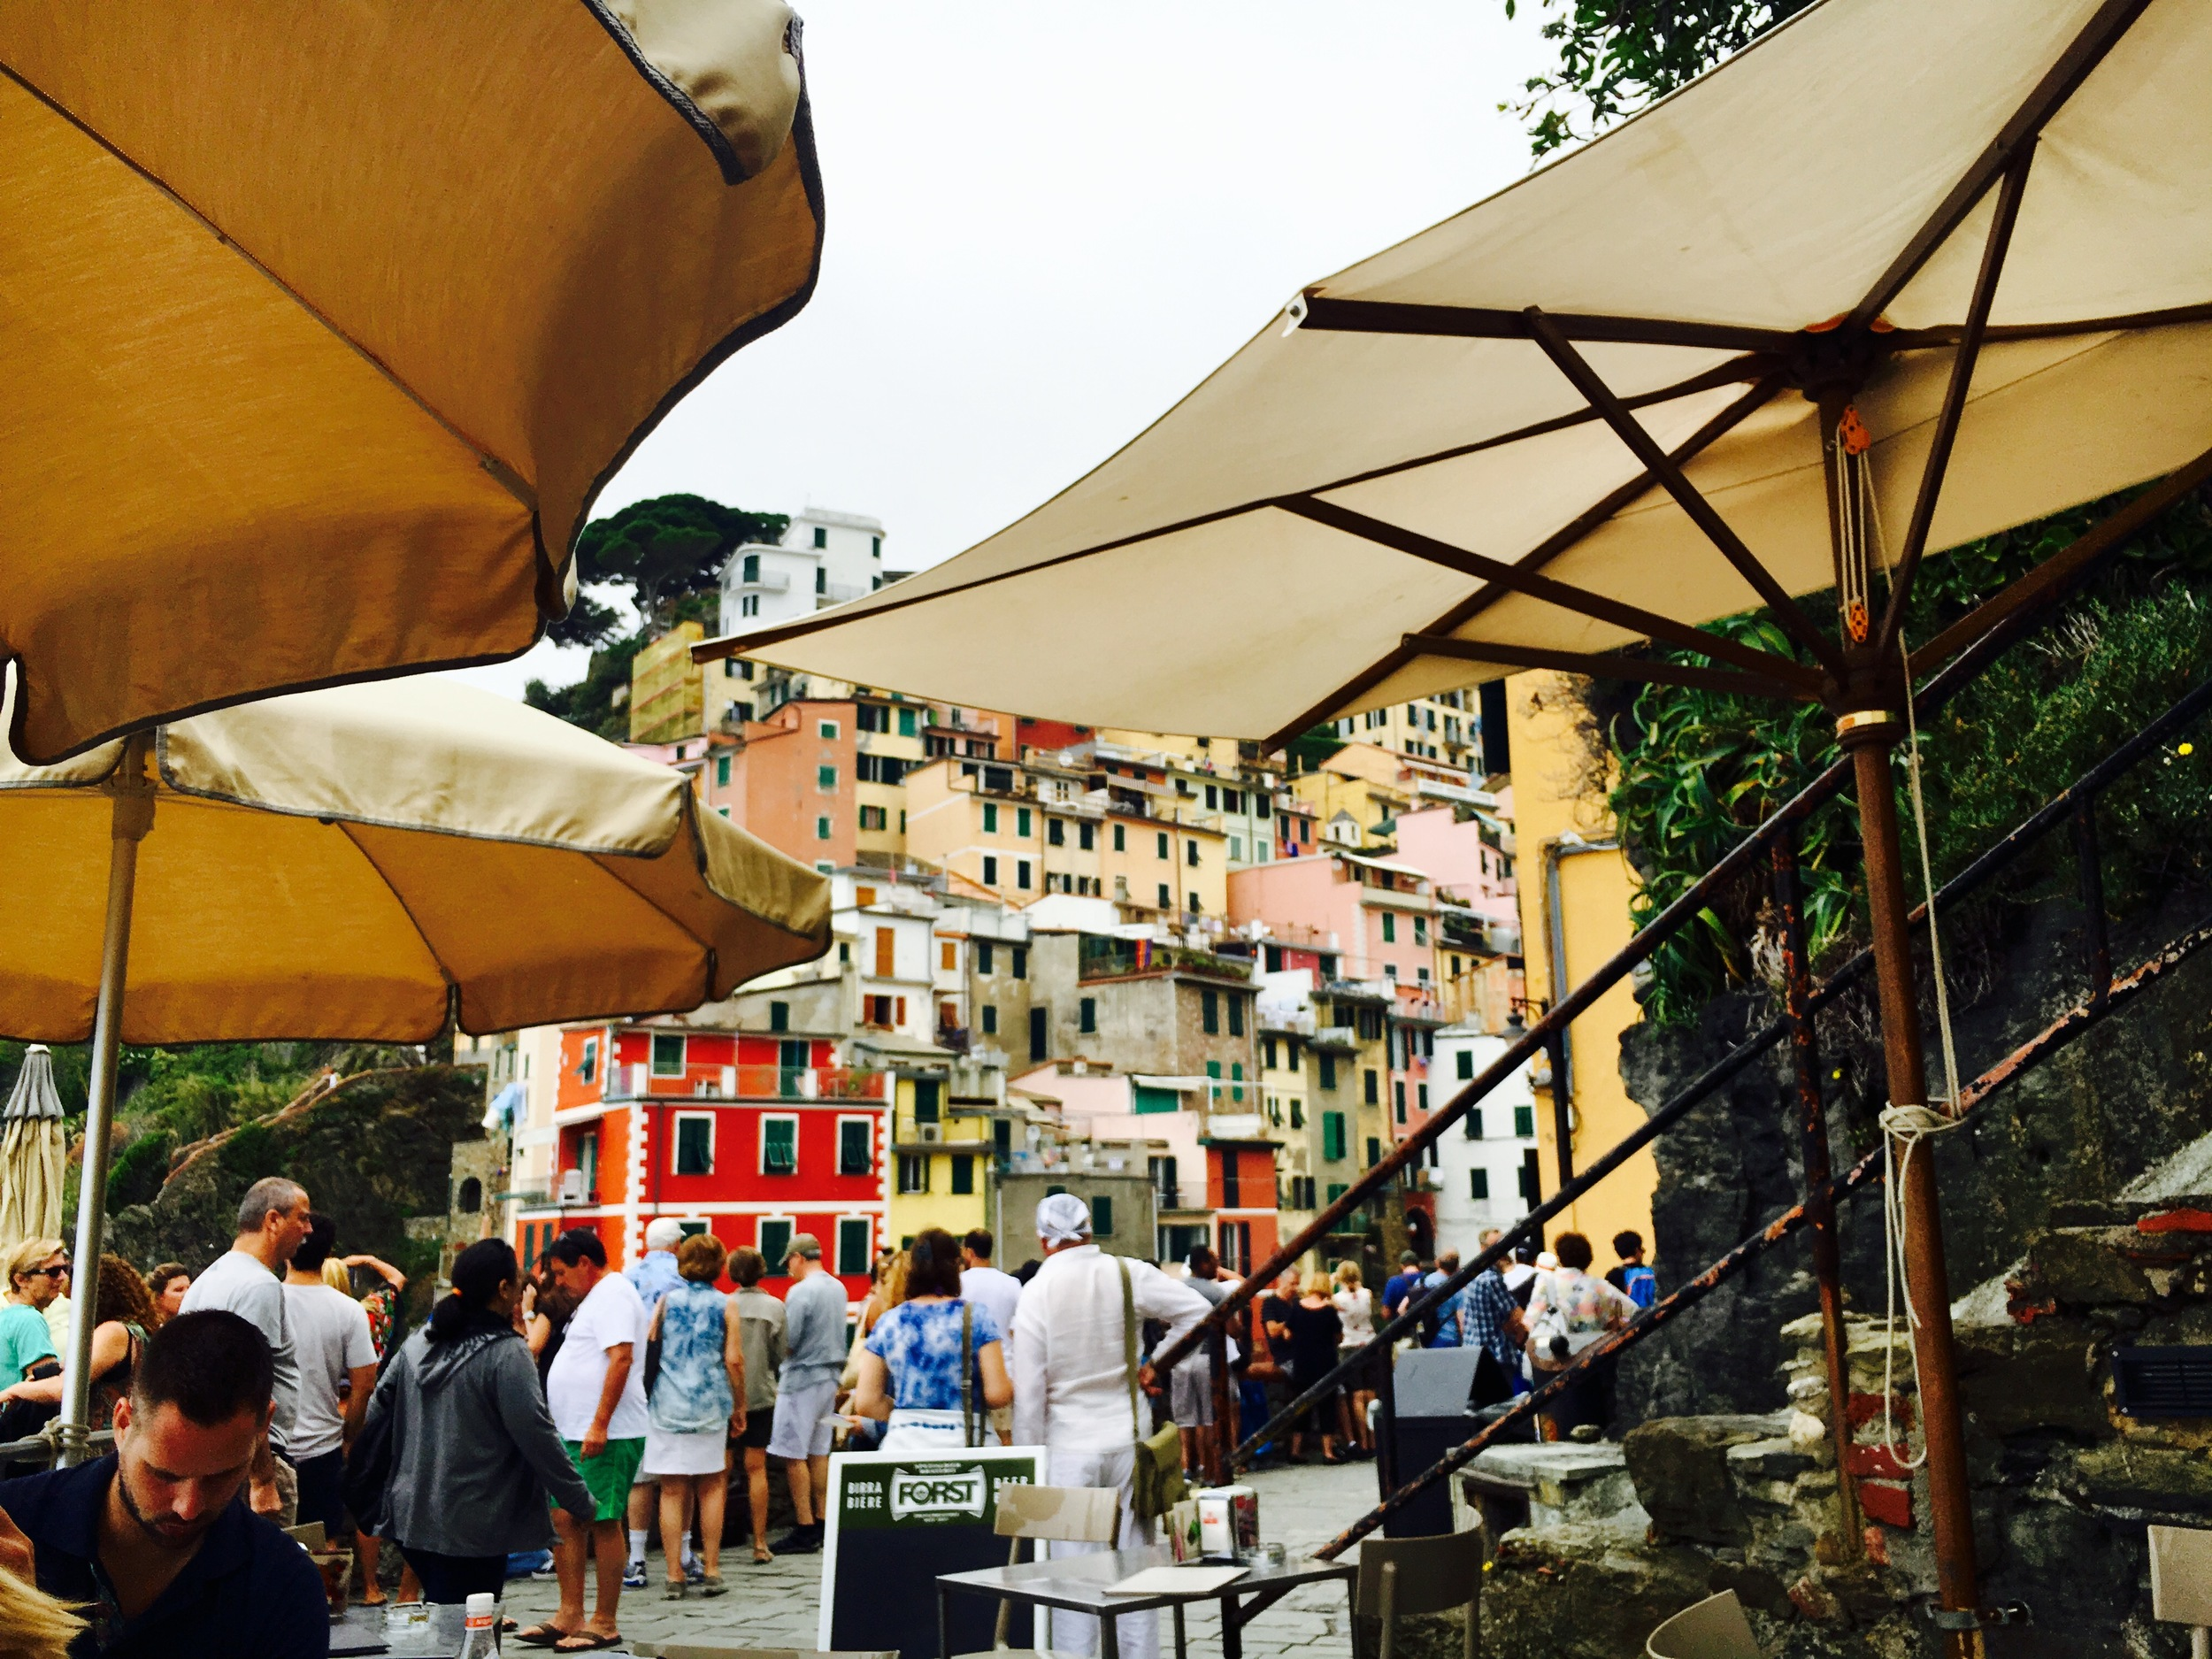 a view from a cafe in Riomaggiore, Cinque Terre, Italy